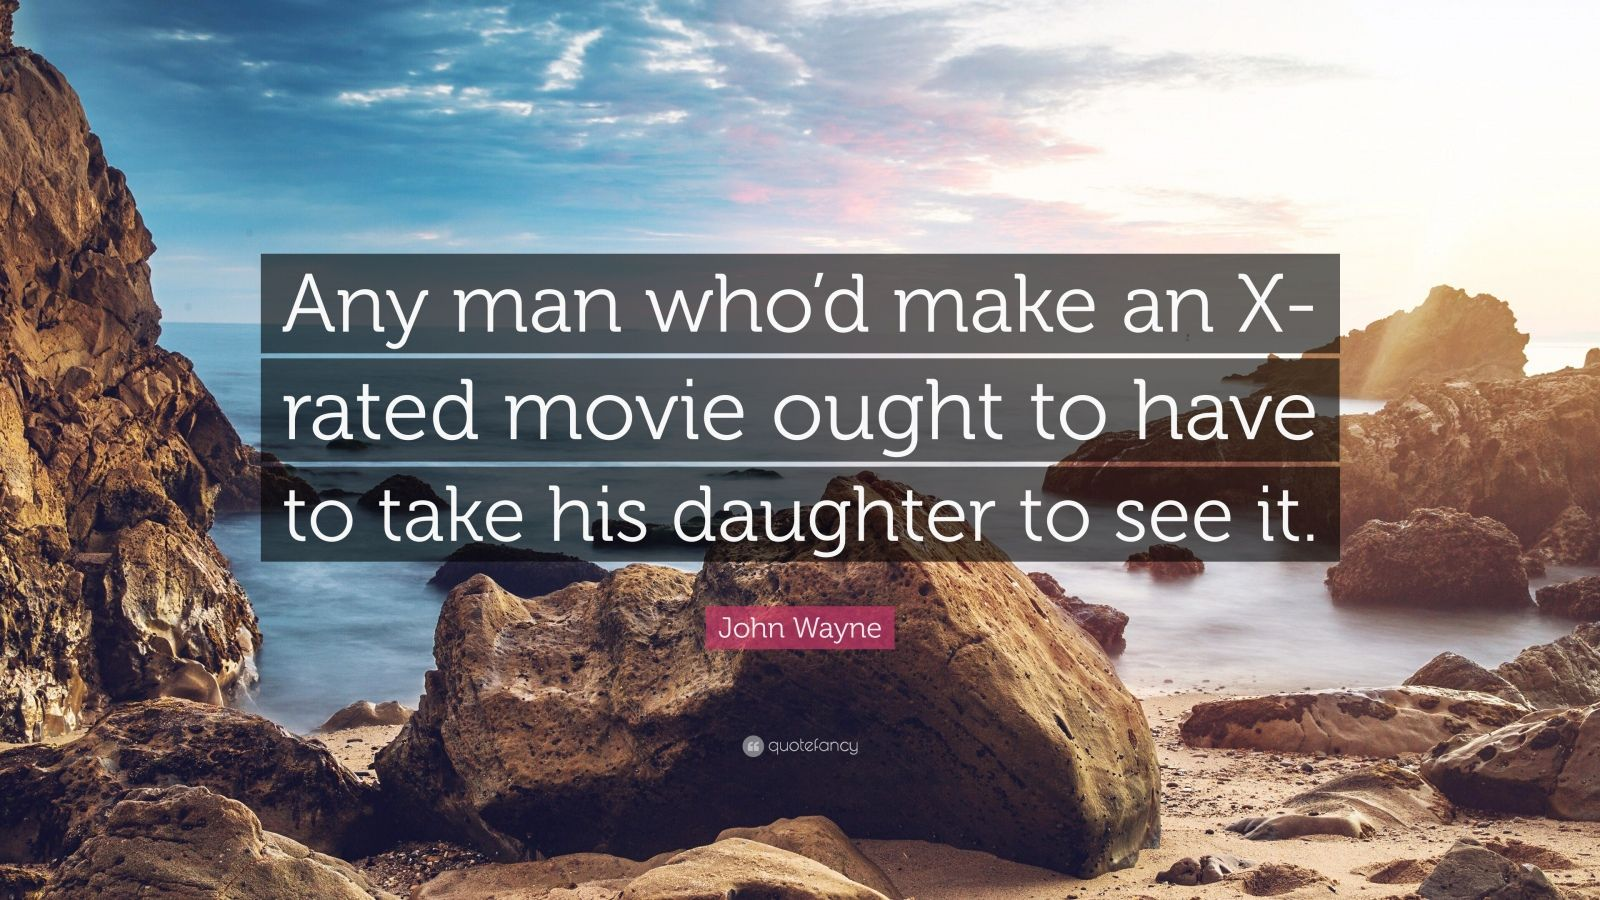 """John Wayne Quote: """"Any man who'd make an X-rated movie ought to have to take his daughter to see it."""""""